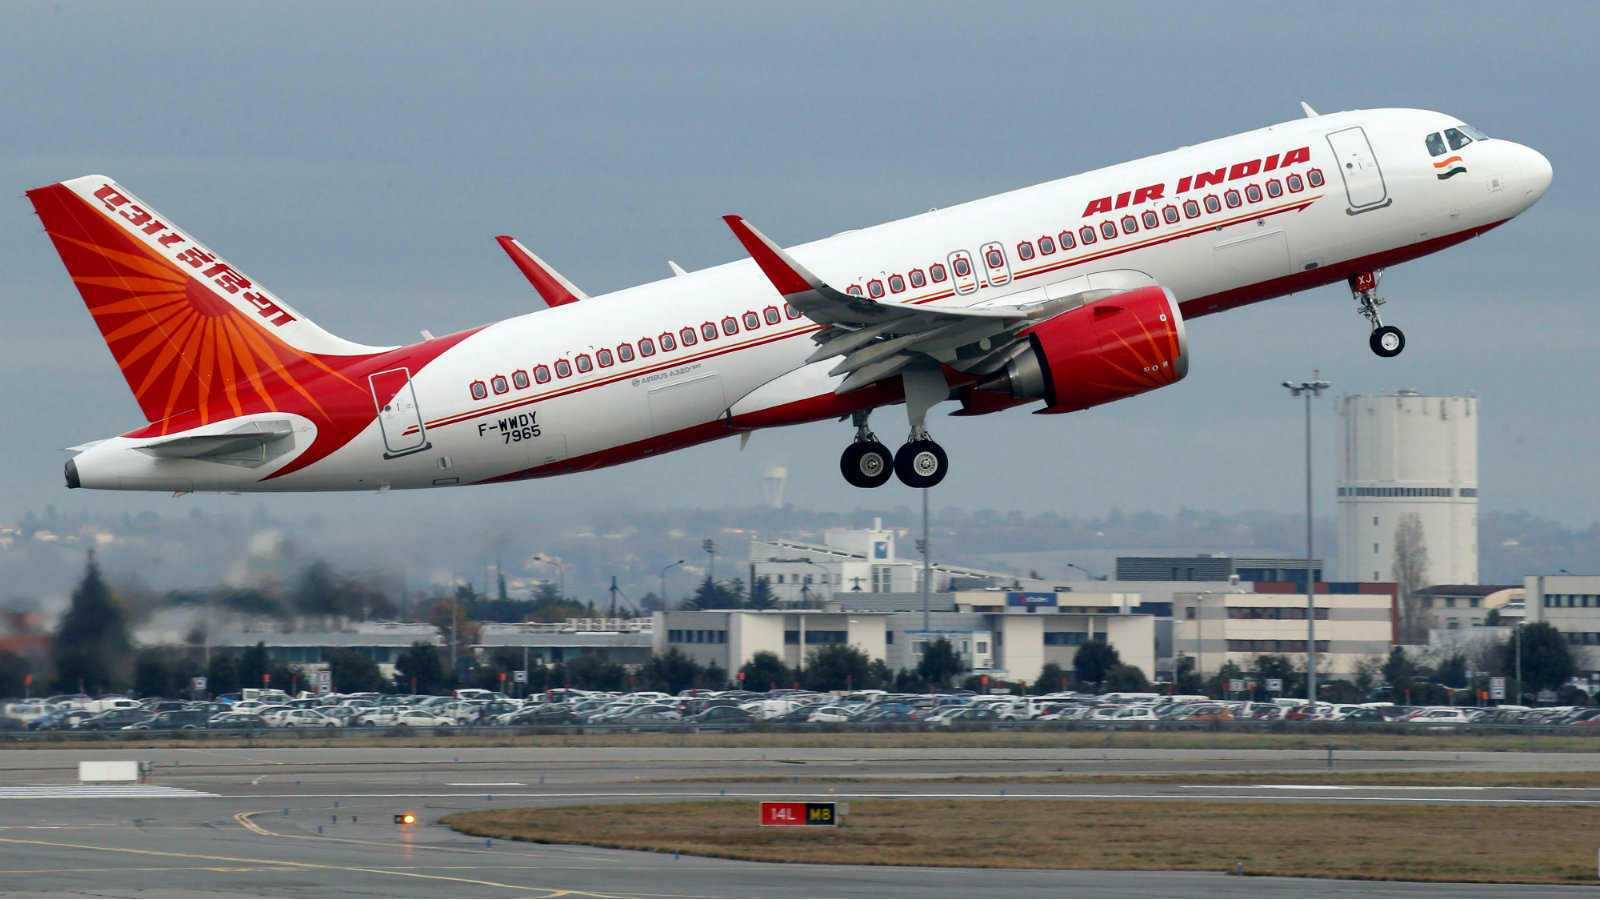 An Air India Airbus A320neo plane takes off from Colomiers near Toulouse, France in December 2017.